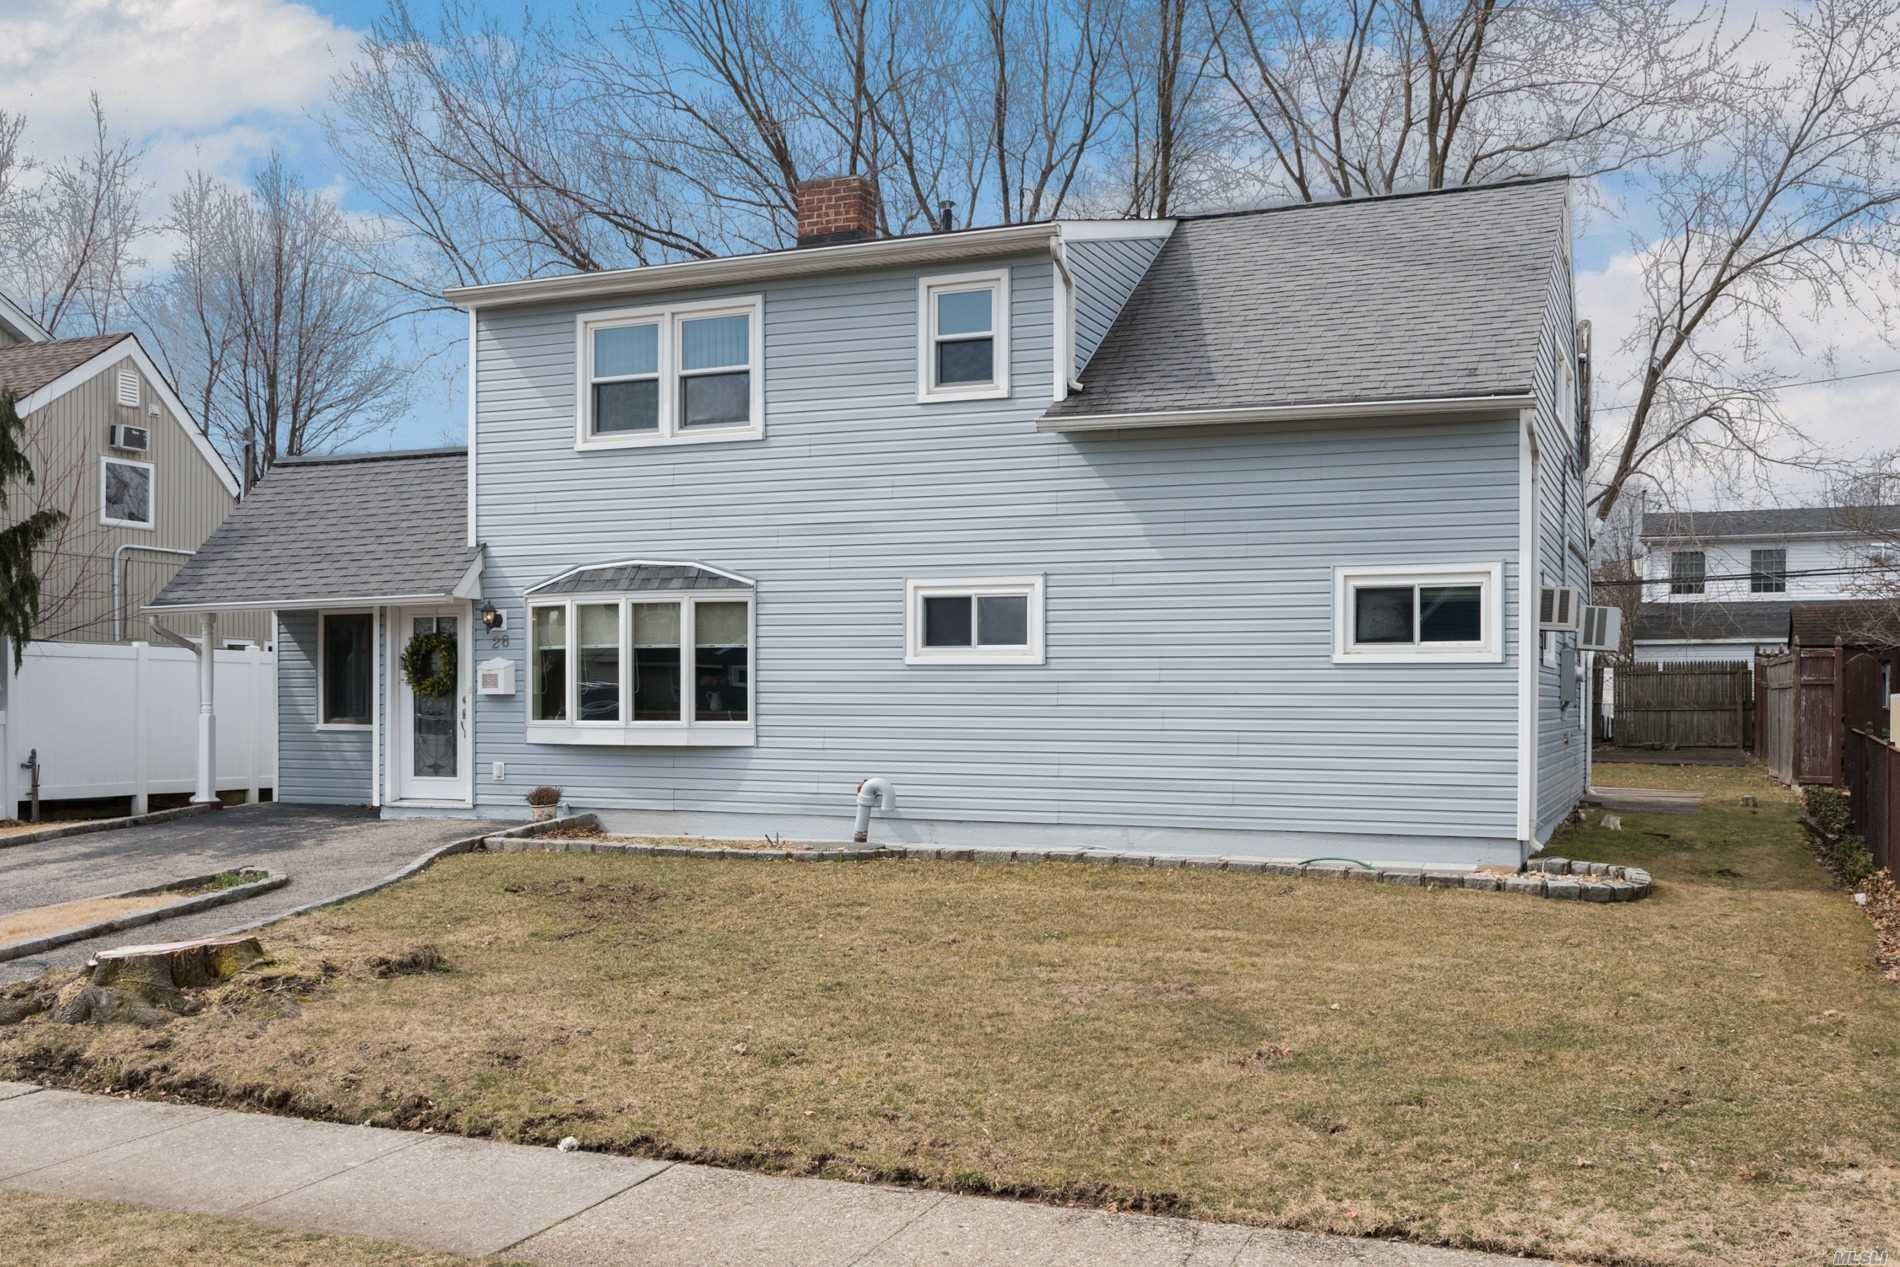 Beautiful Expanded Ranch Located Mid Block On A Quiet Street. Tastefully Updated Kitchen, Baths. Open Floor Plan, New Washer/Dryer, Many Updates. MUST SEE!